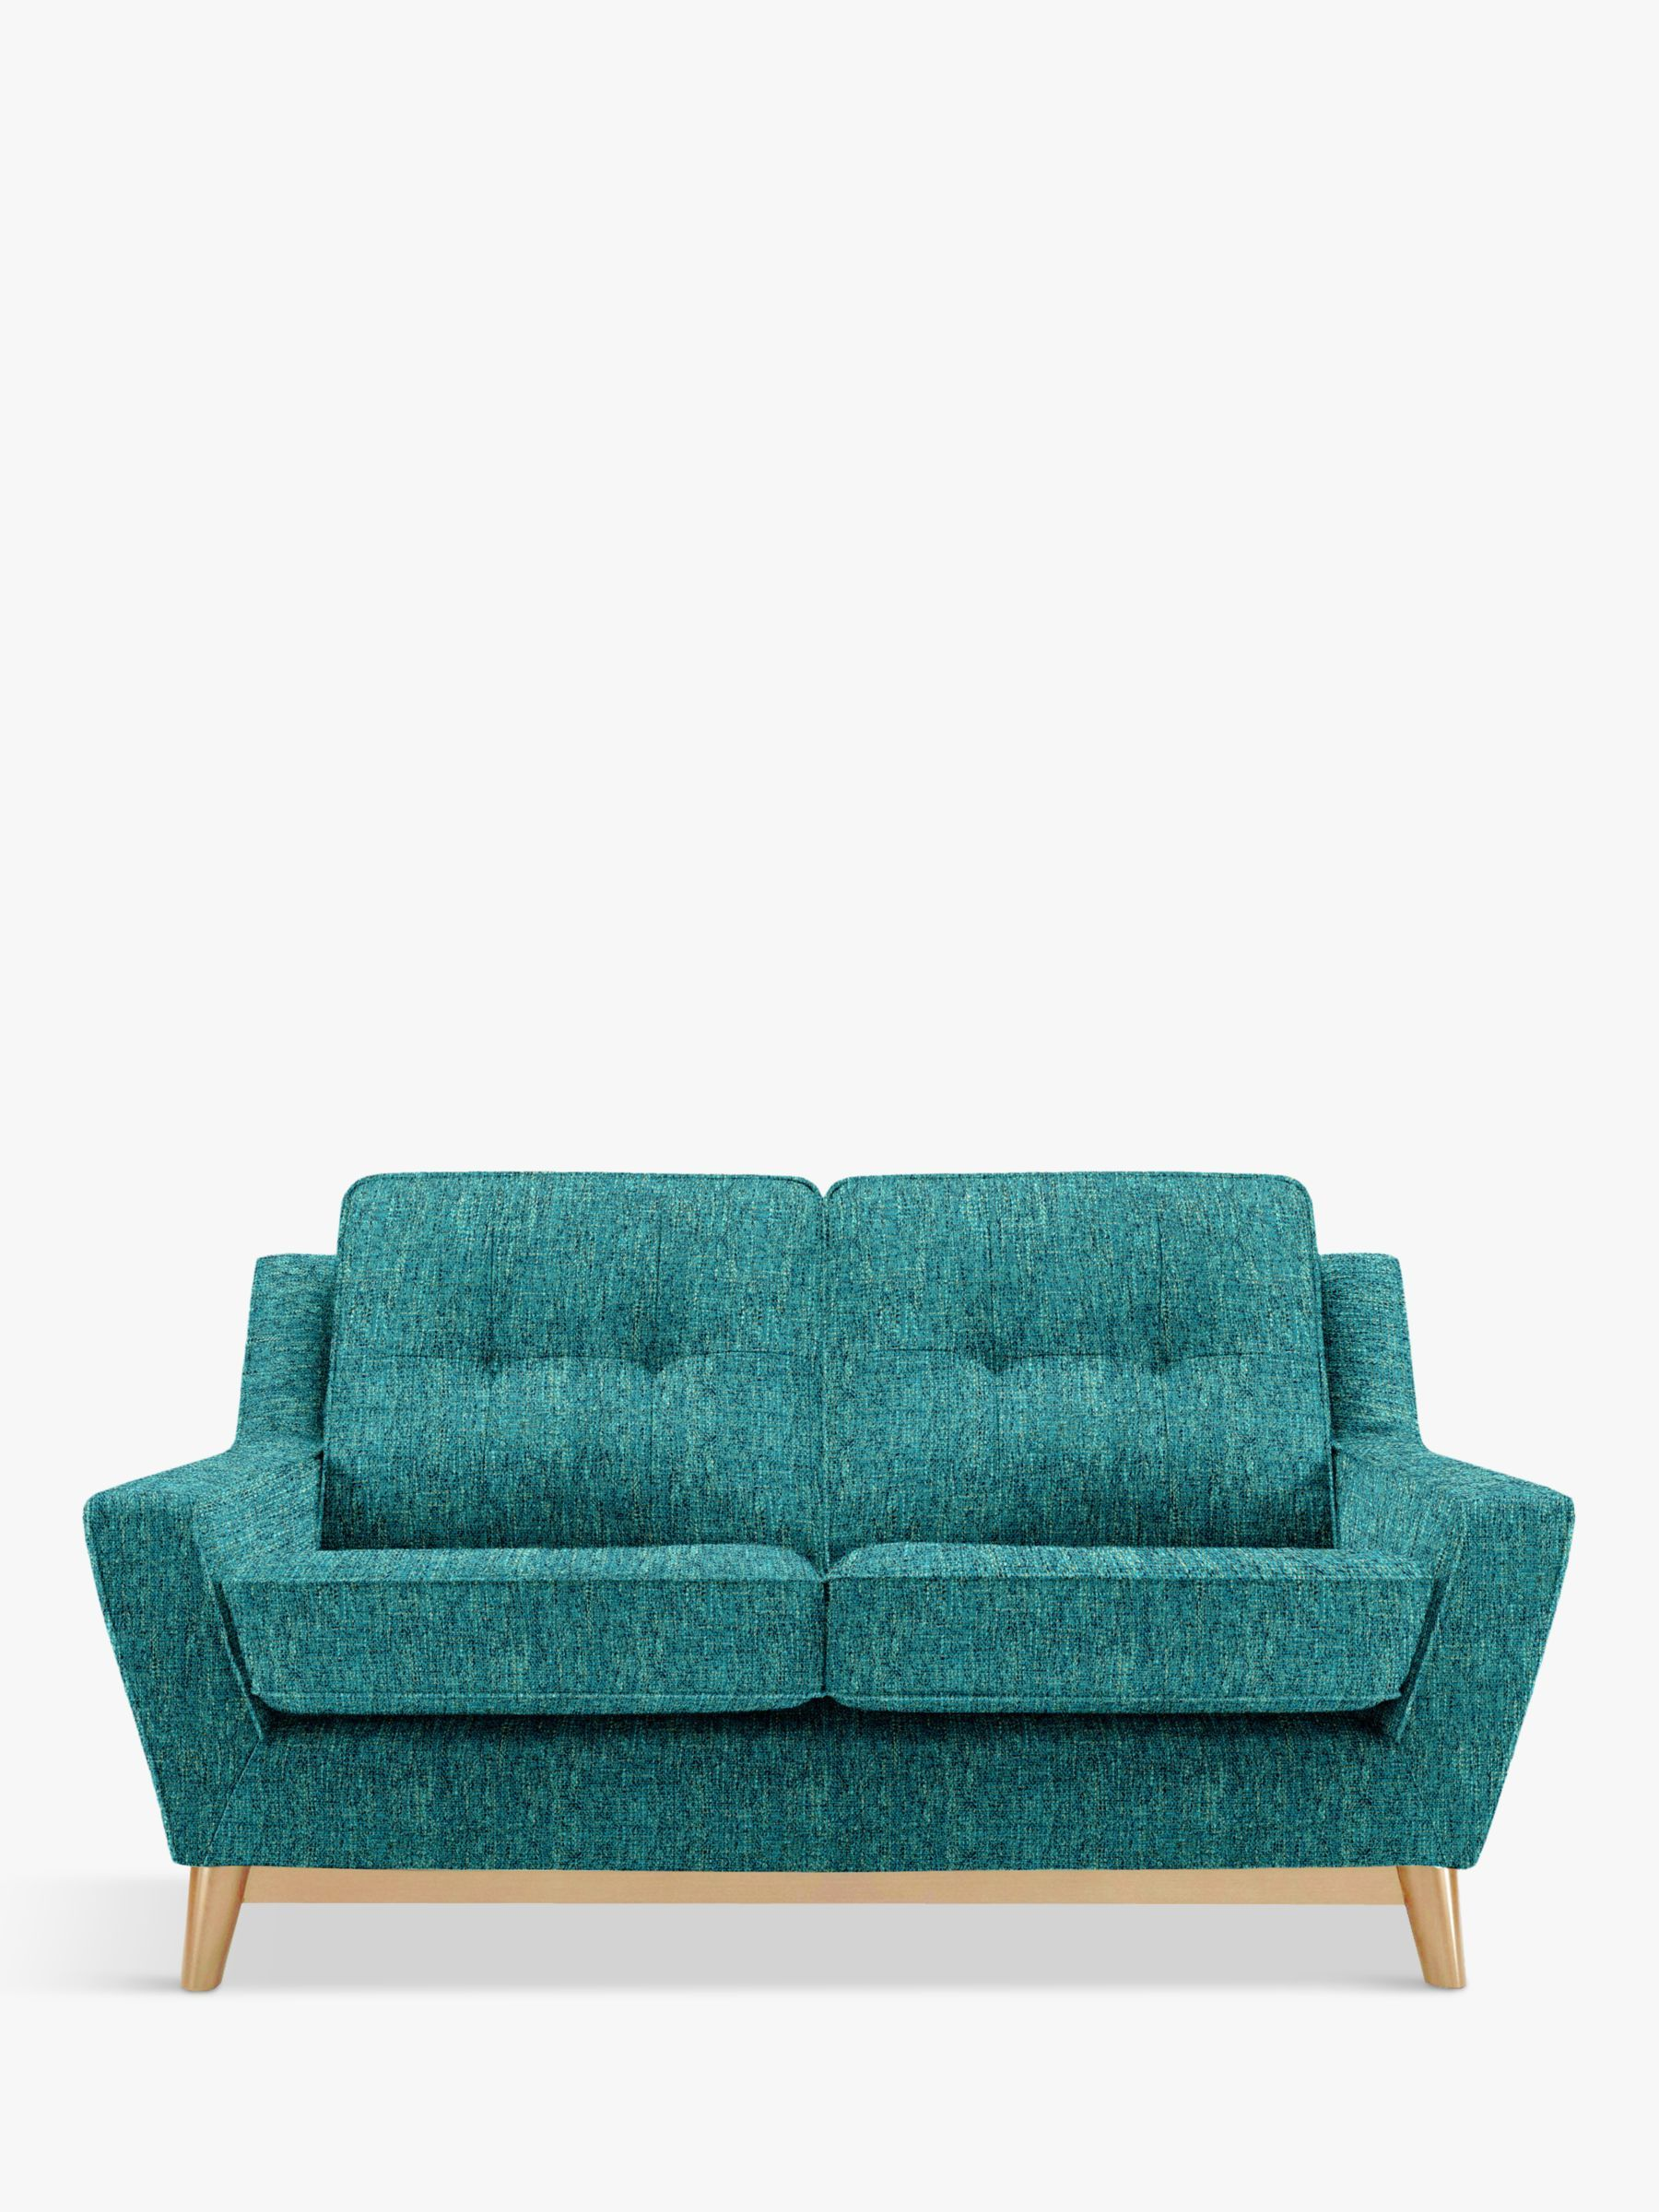 G Plan Vintage The Fifty Three Small 2 Seater Sofa Piero Teal 2 Seater Sofa Sofa G Plan Sofa